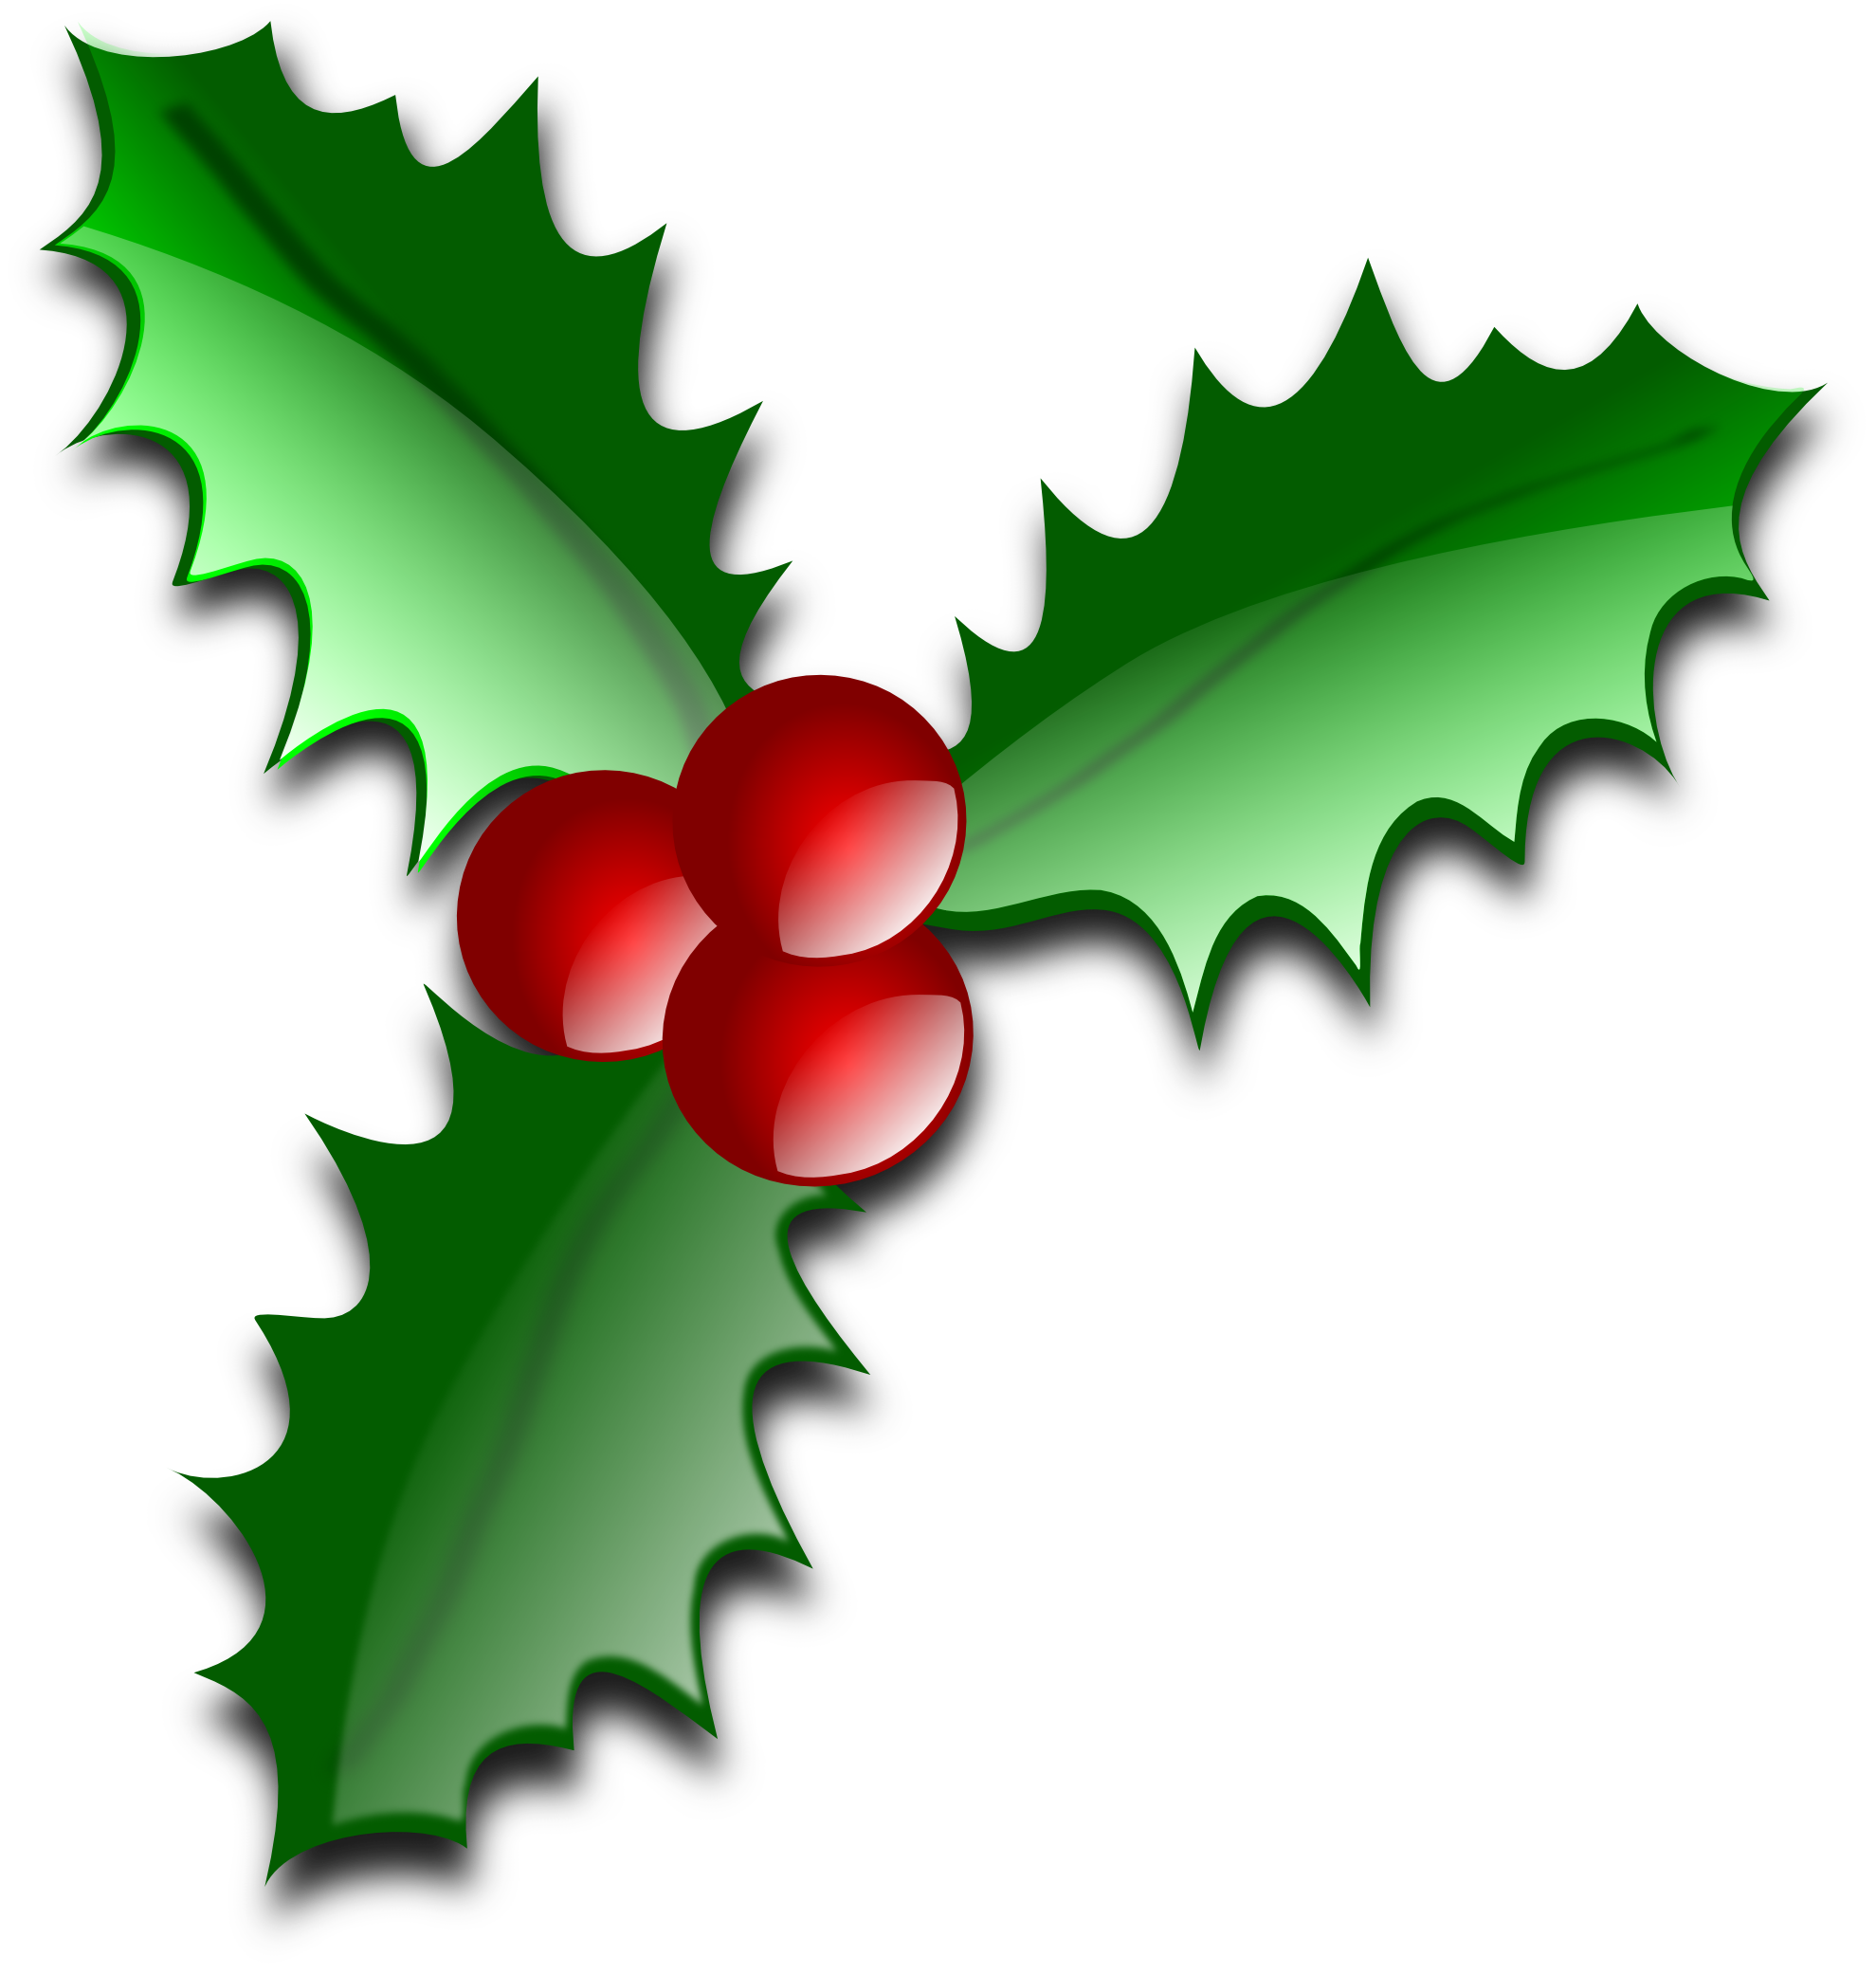 Free images christmas download. Poinsettia clipart symbol